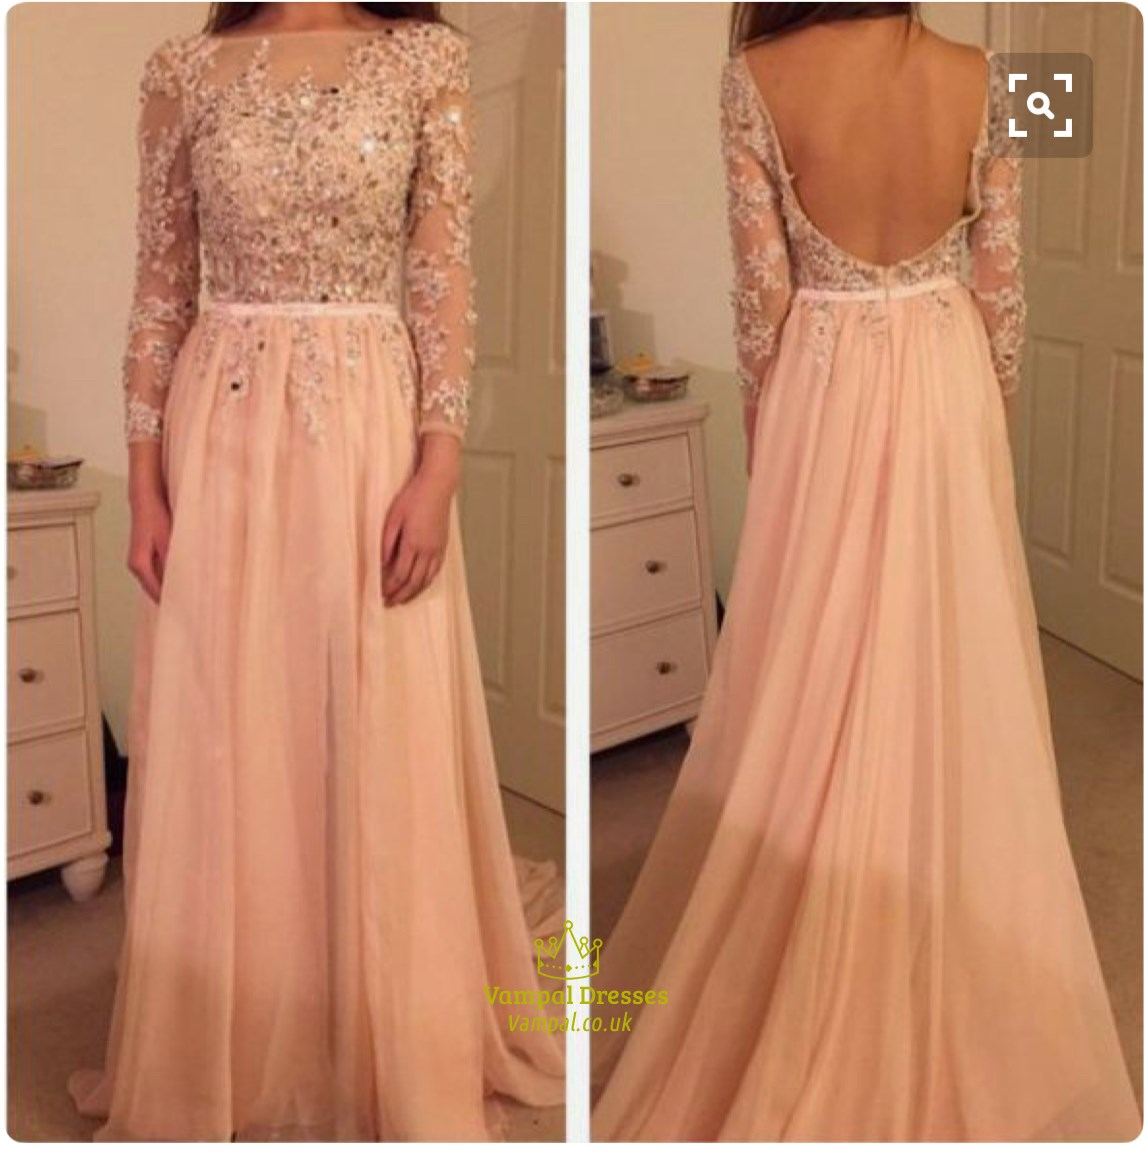 66ddbd5d26613 Blush Pink Illusion Lace Long Sleeve Backless Full Length Prom Dress SKU  -FS1358